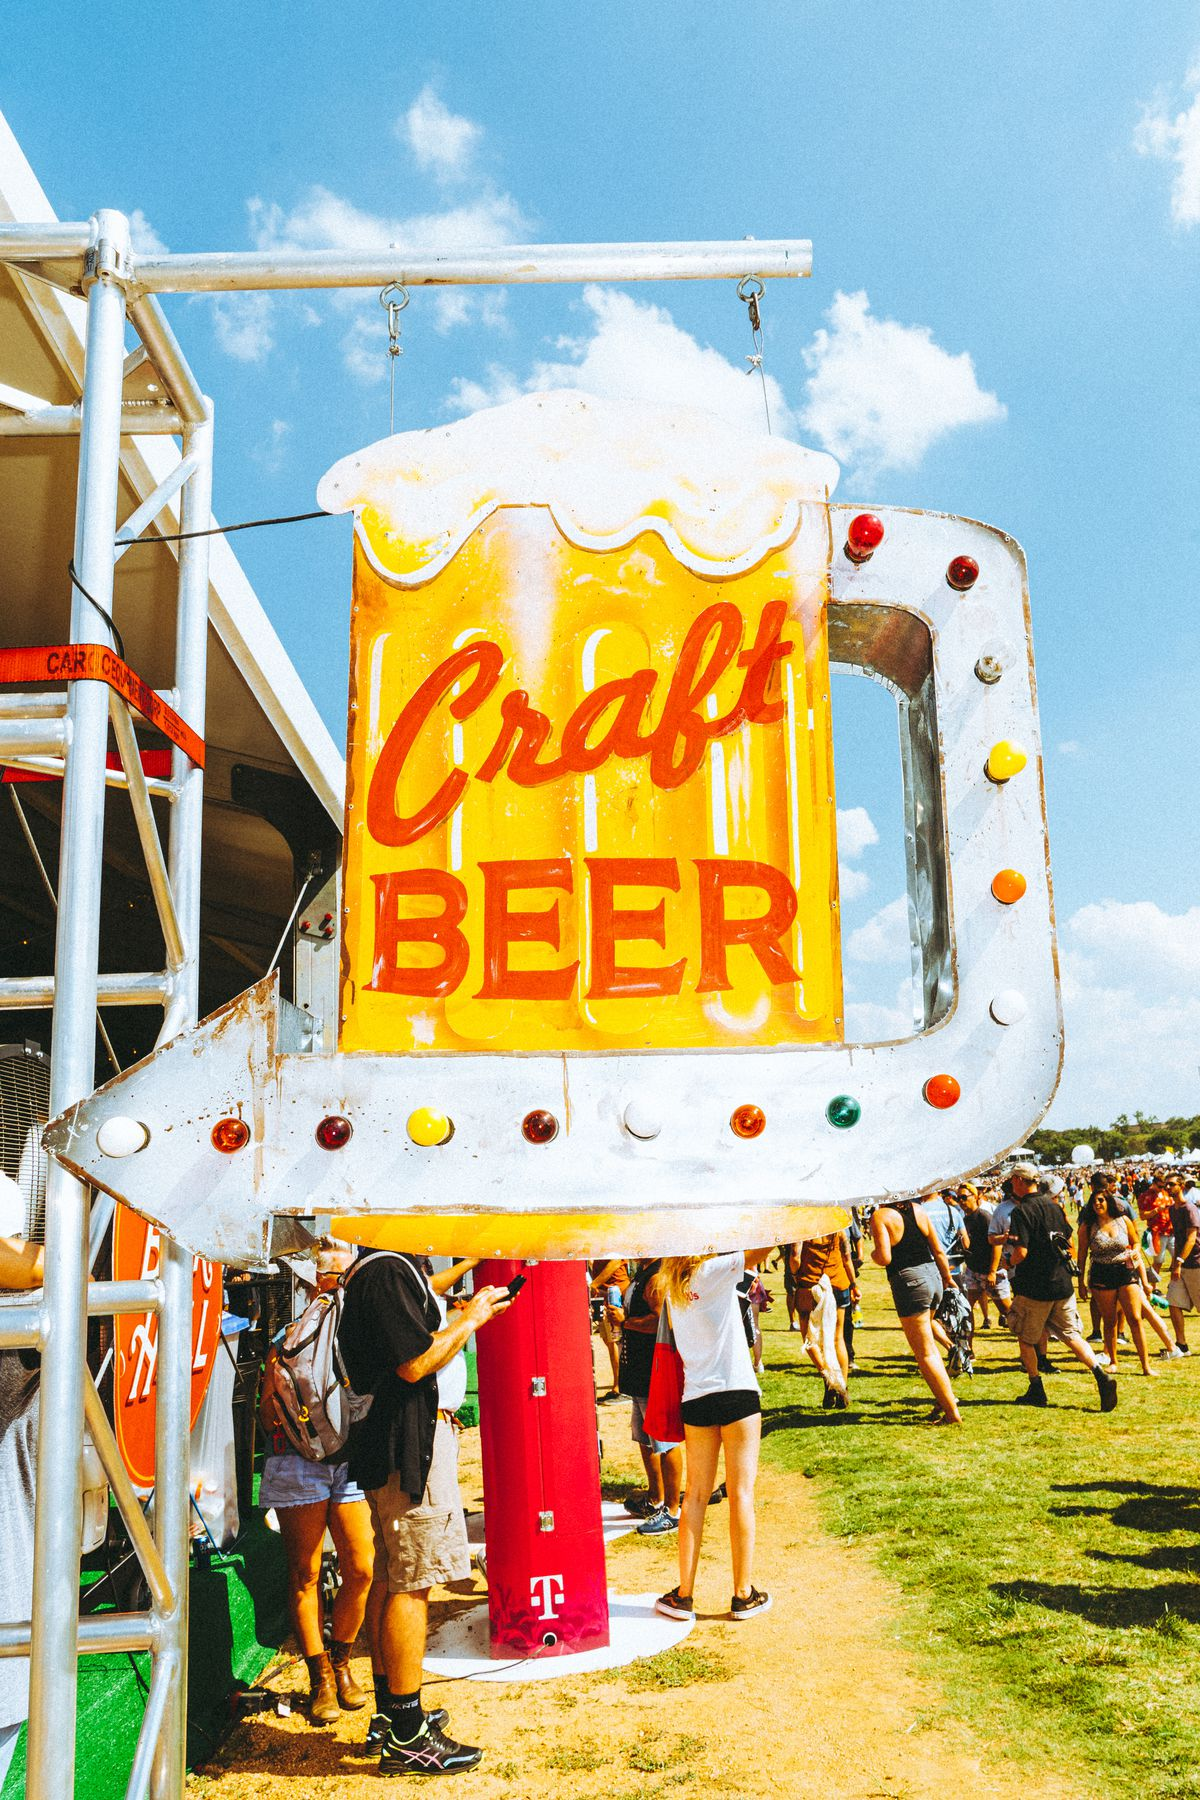 """A sign in the shape of a beer glass that reads """"Craft Beer"""" with a sign pointing to the left"""